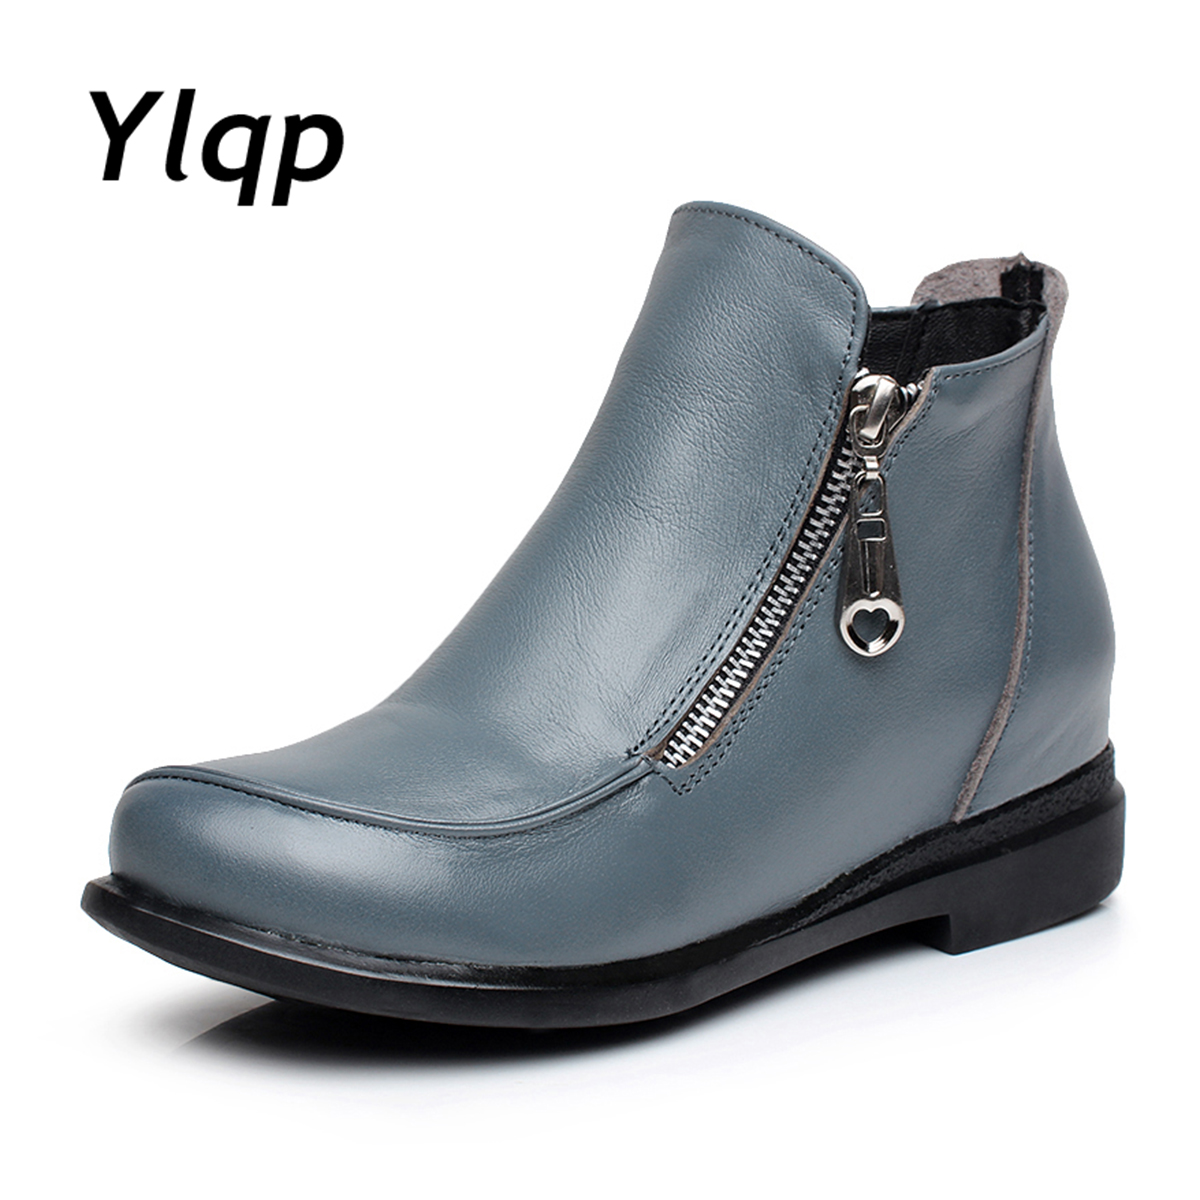 Autumn Winter Genuine Leather Women Boots Fashion Flat Heels Shoes Round Toe Ladies Boots Female Casual Zipper Ankle Boots botas<br>